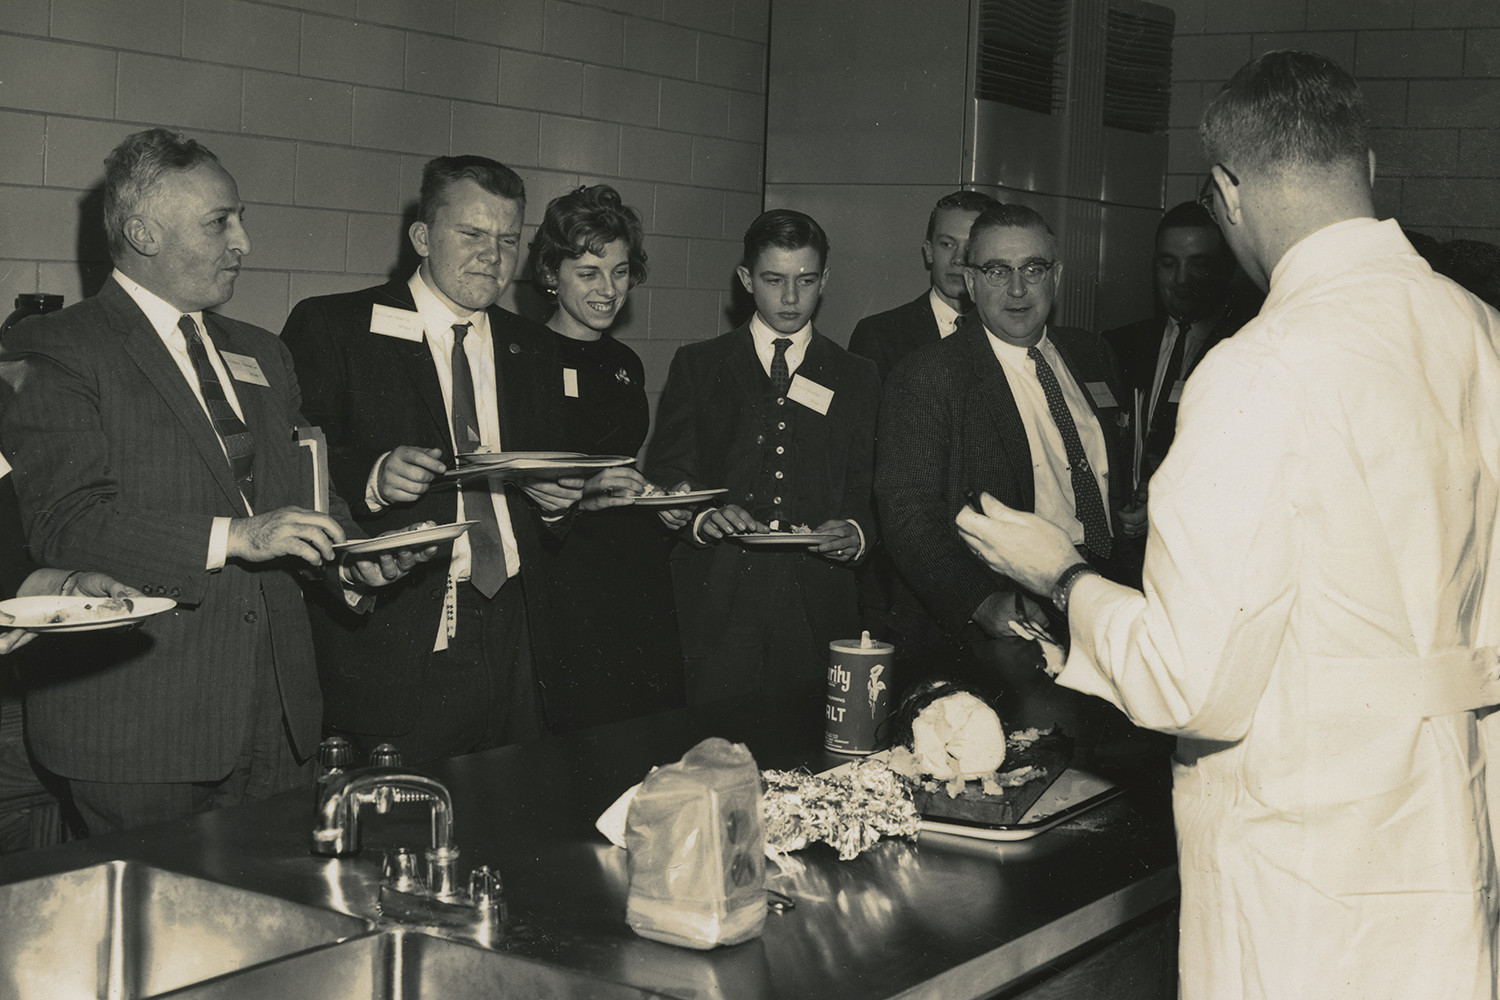 A group of people sampling food in front of a man in a lab coat.